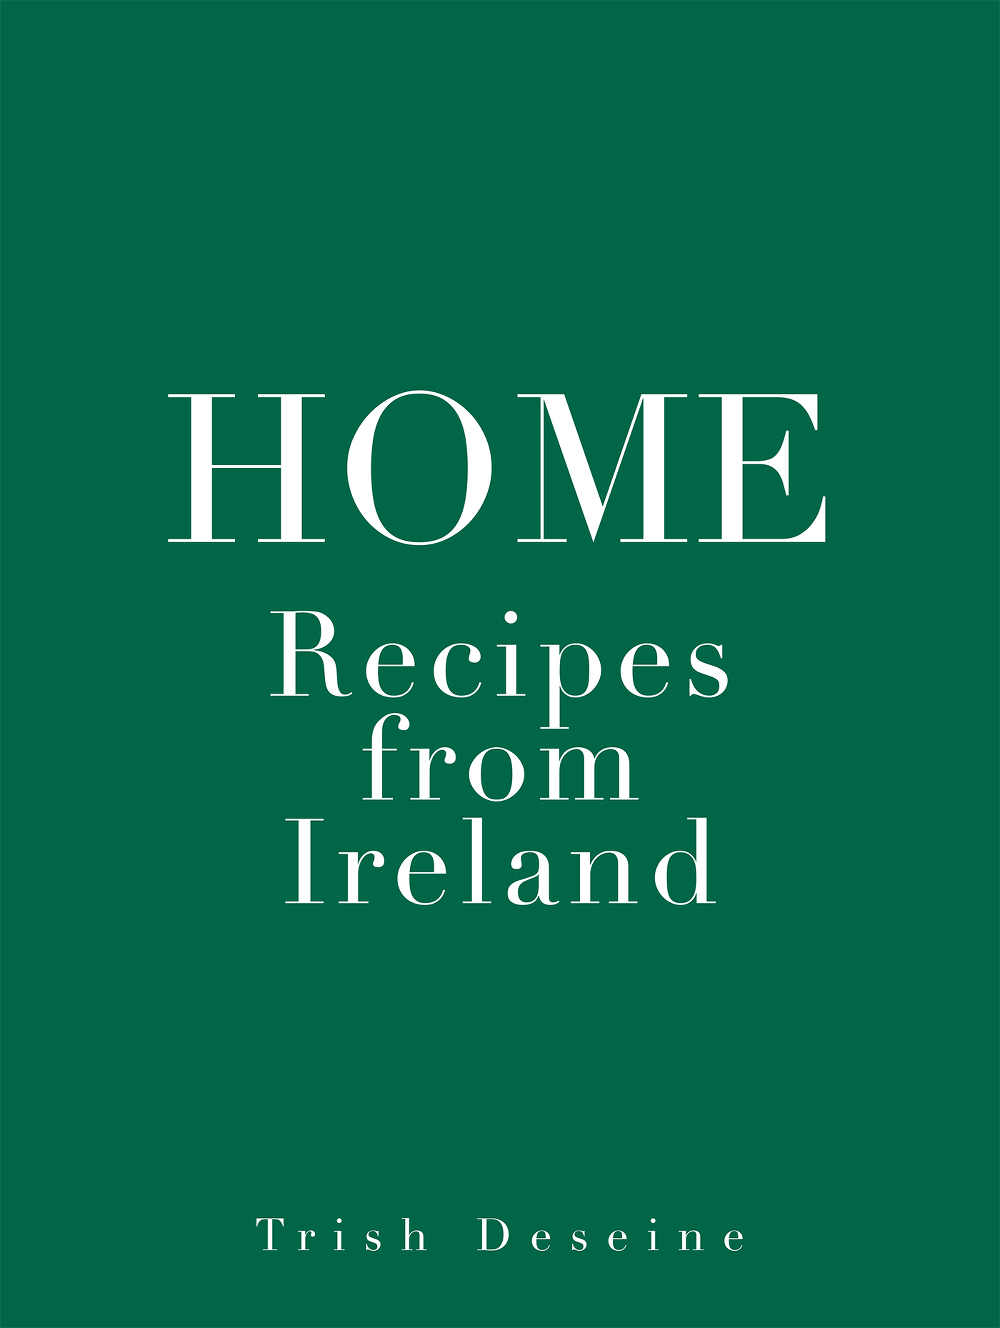 HOME: Recipes from Ireland by Trish Deseine (Hachette Cuisine; hardback, 356pp; photography by Deirdre Rooney; €29)